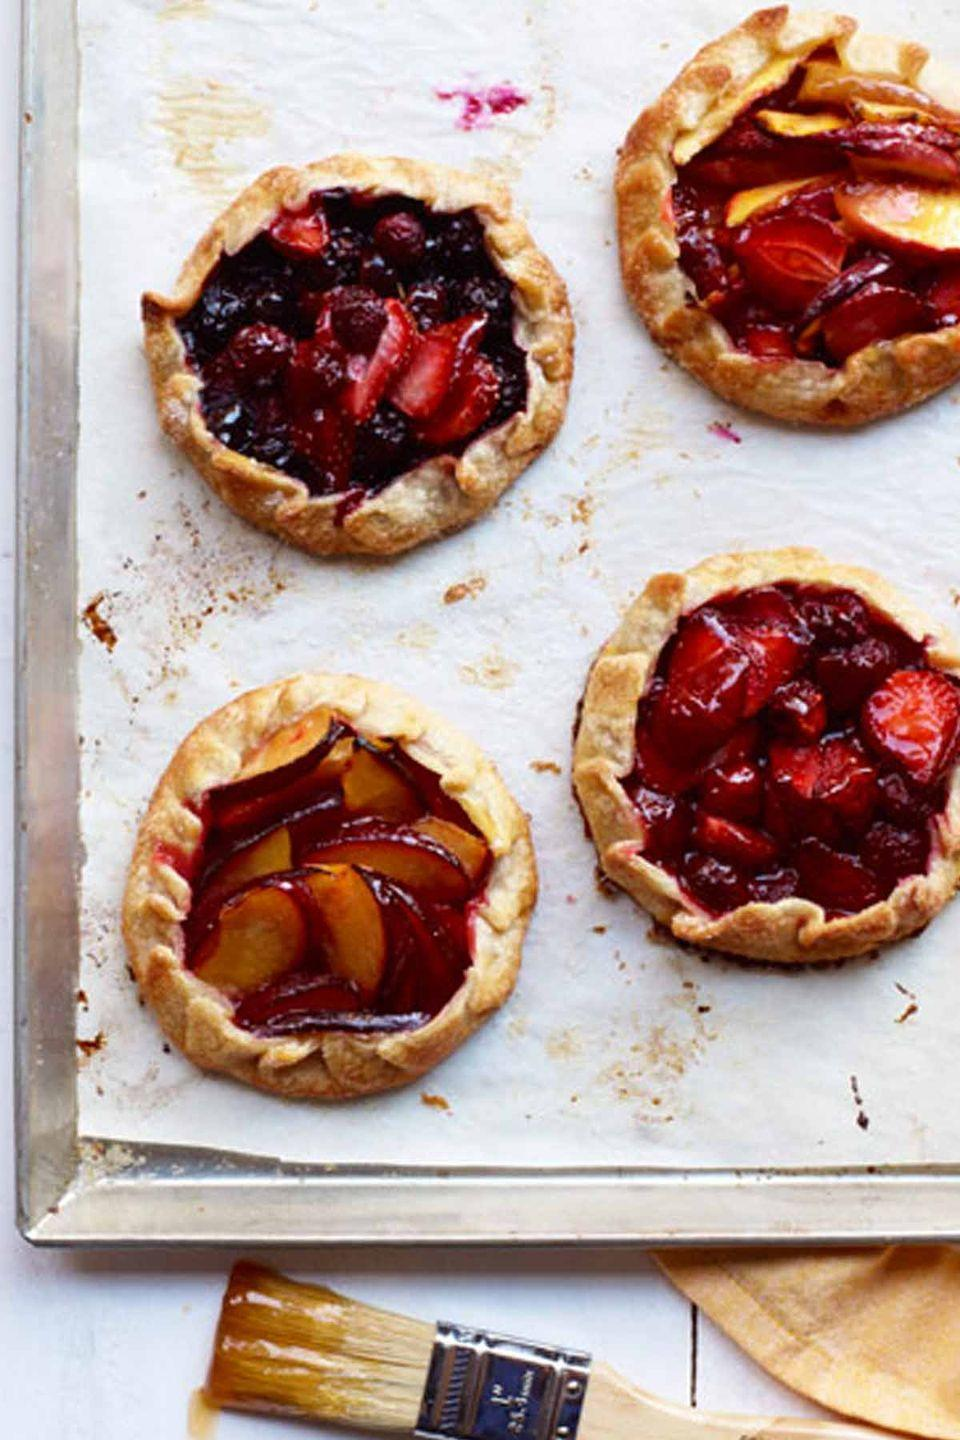 """<p>Strawberries pair up with other summer fruits in these scrumptious mini tarts.</p><p><em><a href=""""https://www.womansday.com/food-recipes/food-drinks/recipes/a12133/summer-fruit-tarts-recipe-wdy0712/"""" rel=""""nofollow noopener"""" target=""""_blank"""" data-ylk=""""slk:Get the recipe for Summer Fruit Tarts."""" class=""""link rapid-noclick-resp"""">Get the recipe for Summer Fruit Tarts.</a></em></p>"""